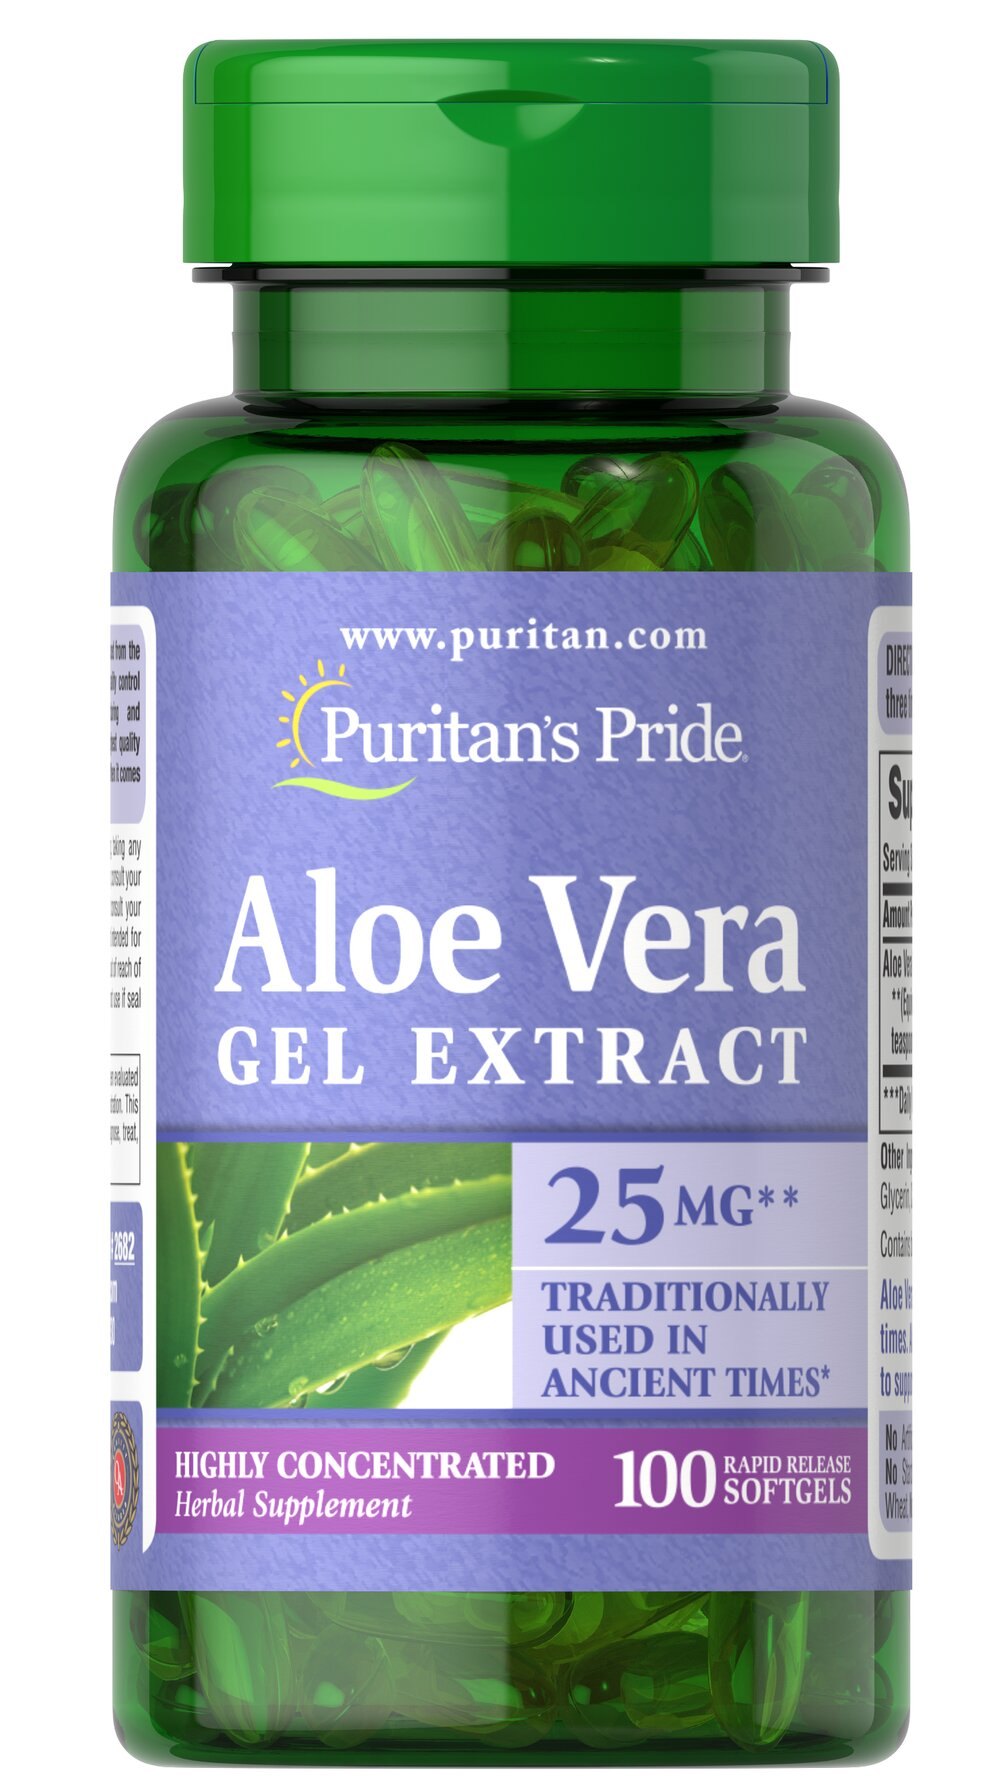 Aloe Vera Extract 25 mg Thumbnail Alternate Bottle View